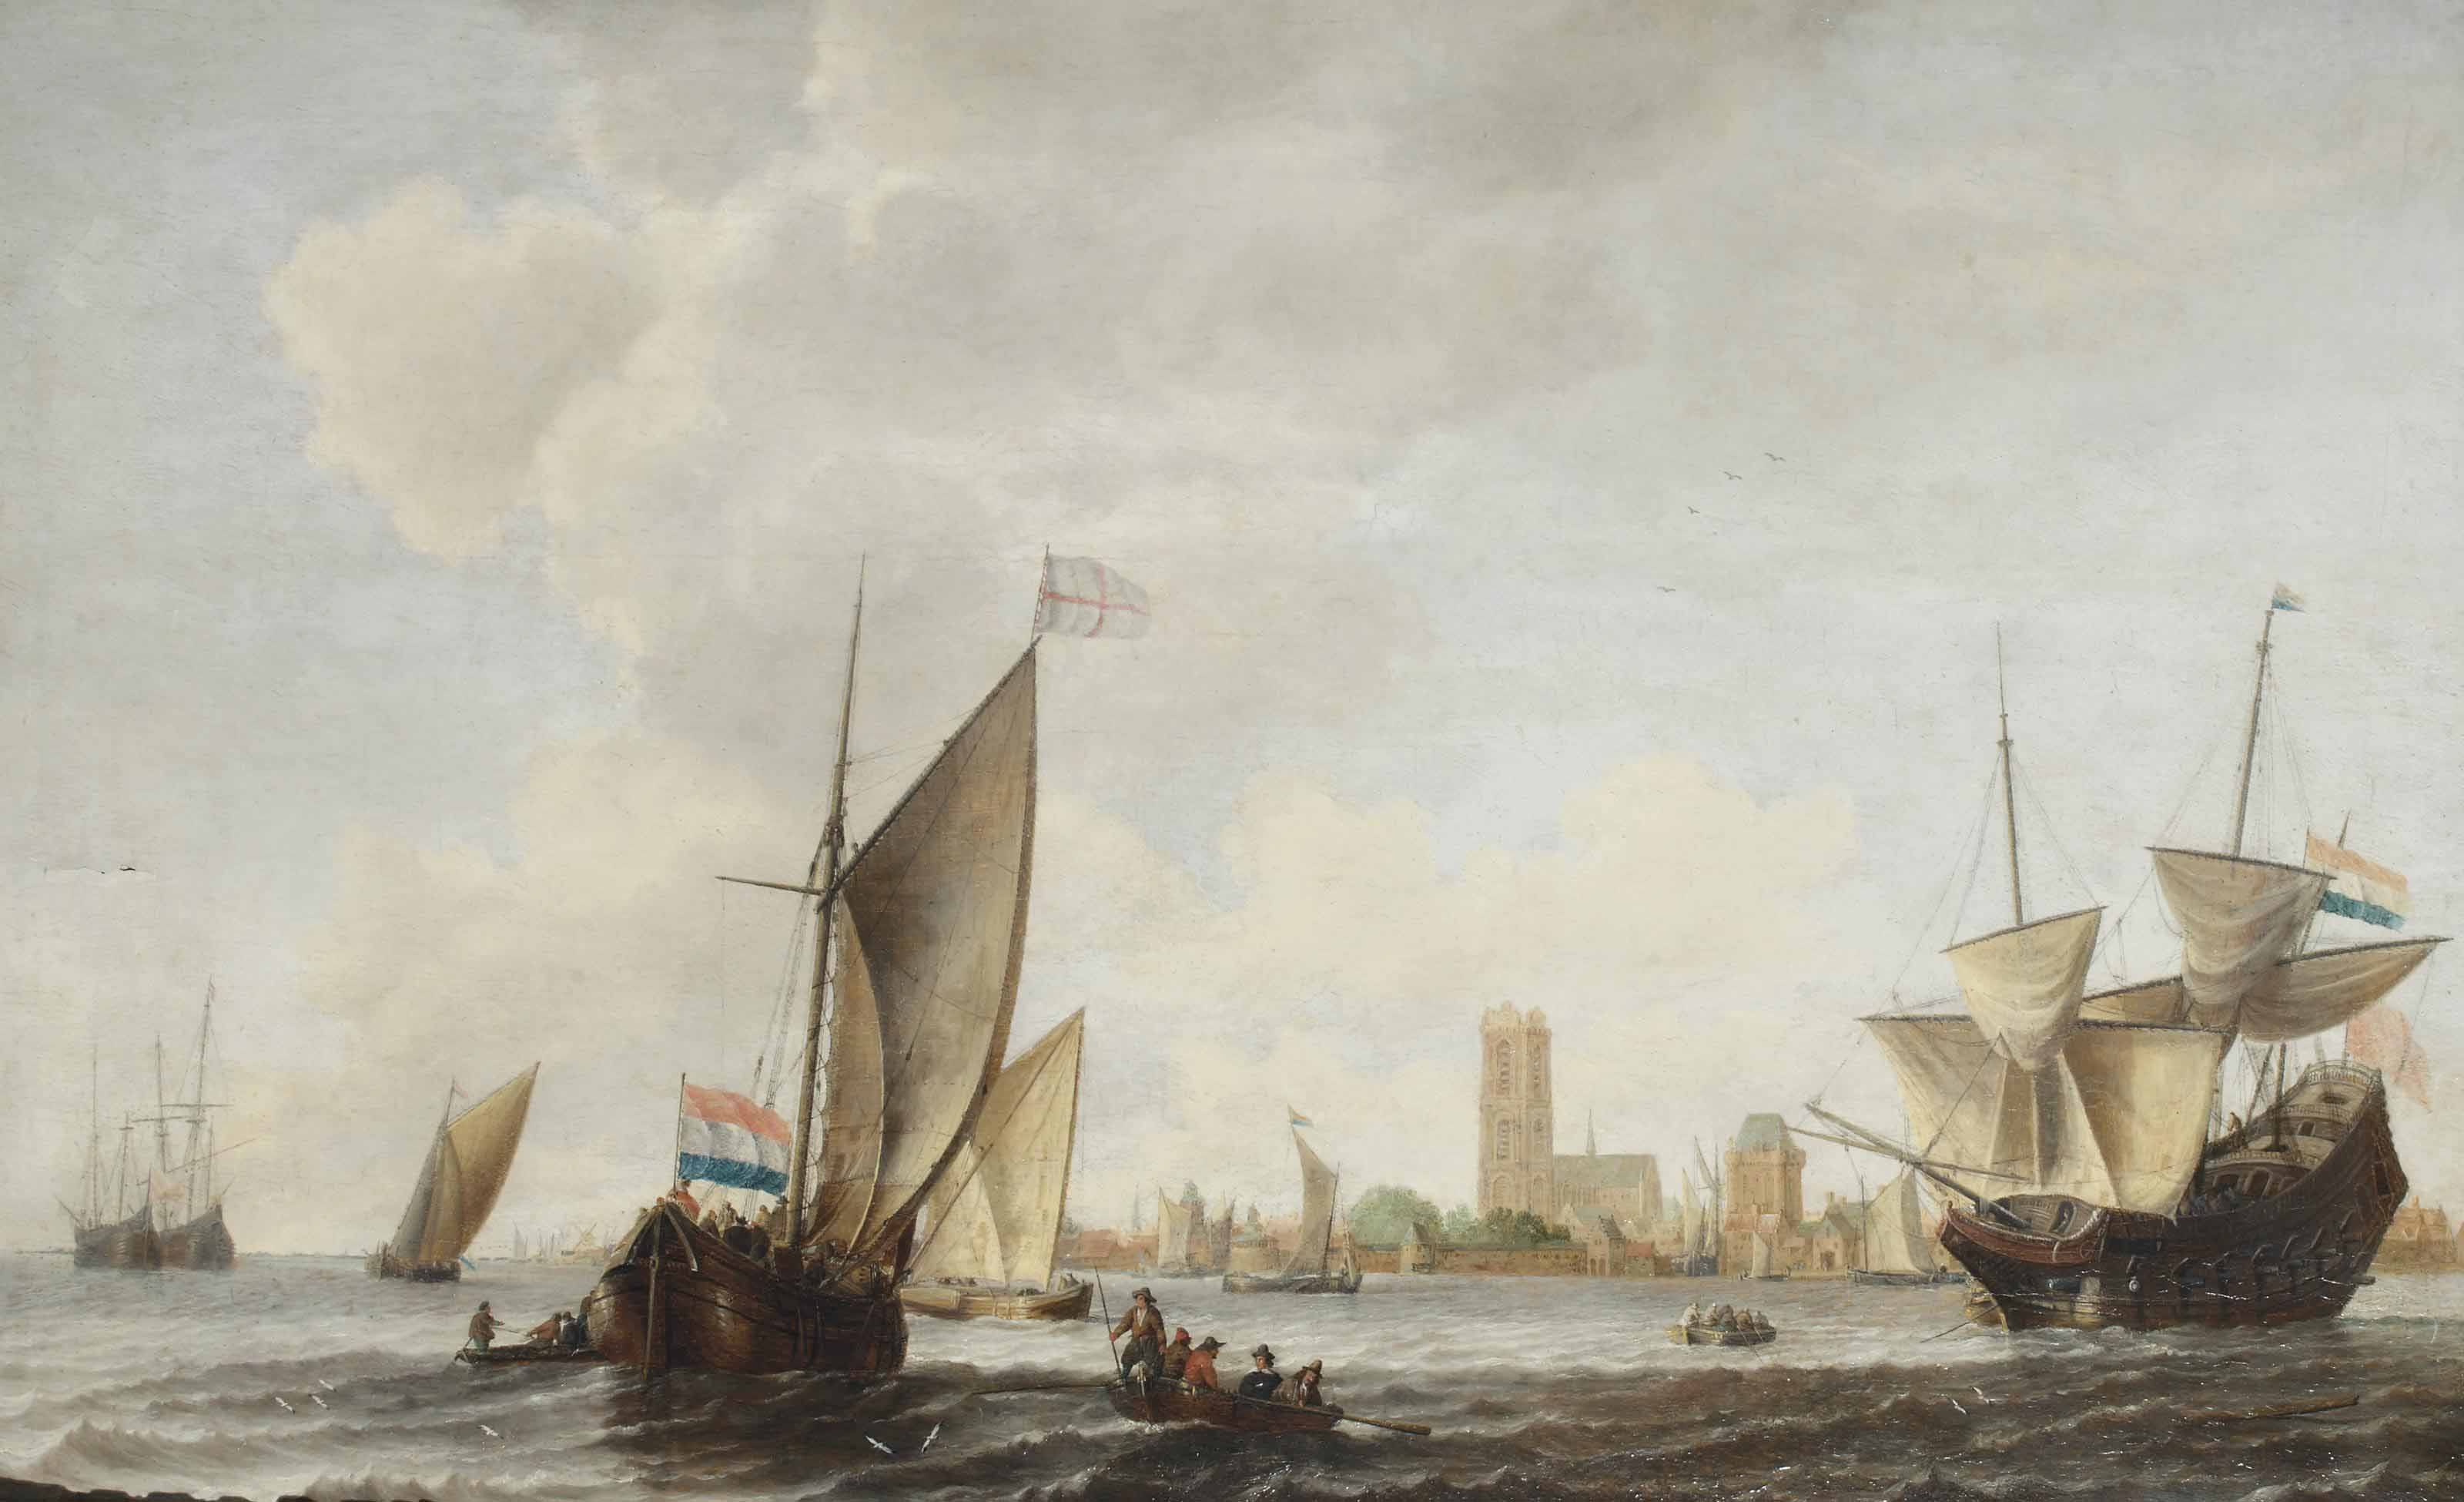 A Smallship, a Merchantman and other ships on the Merwede near Dordrecht